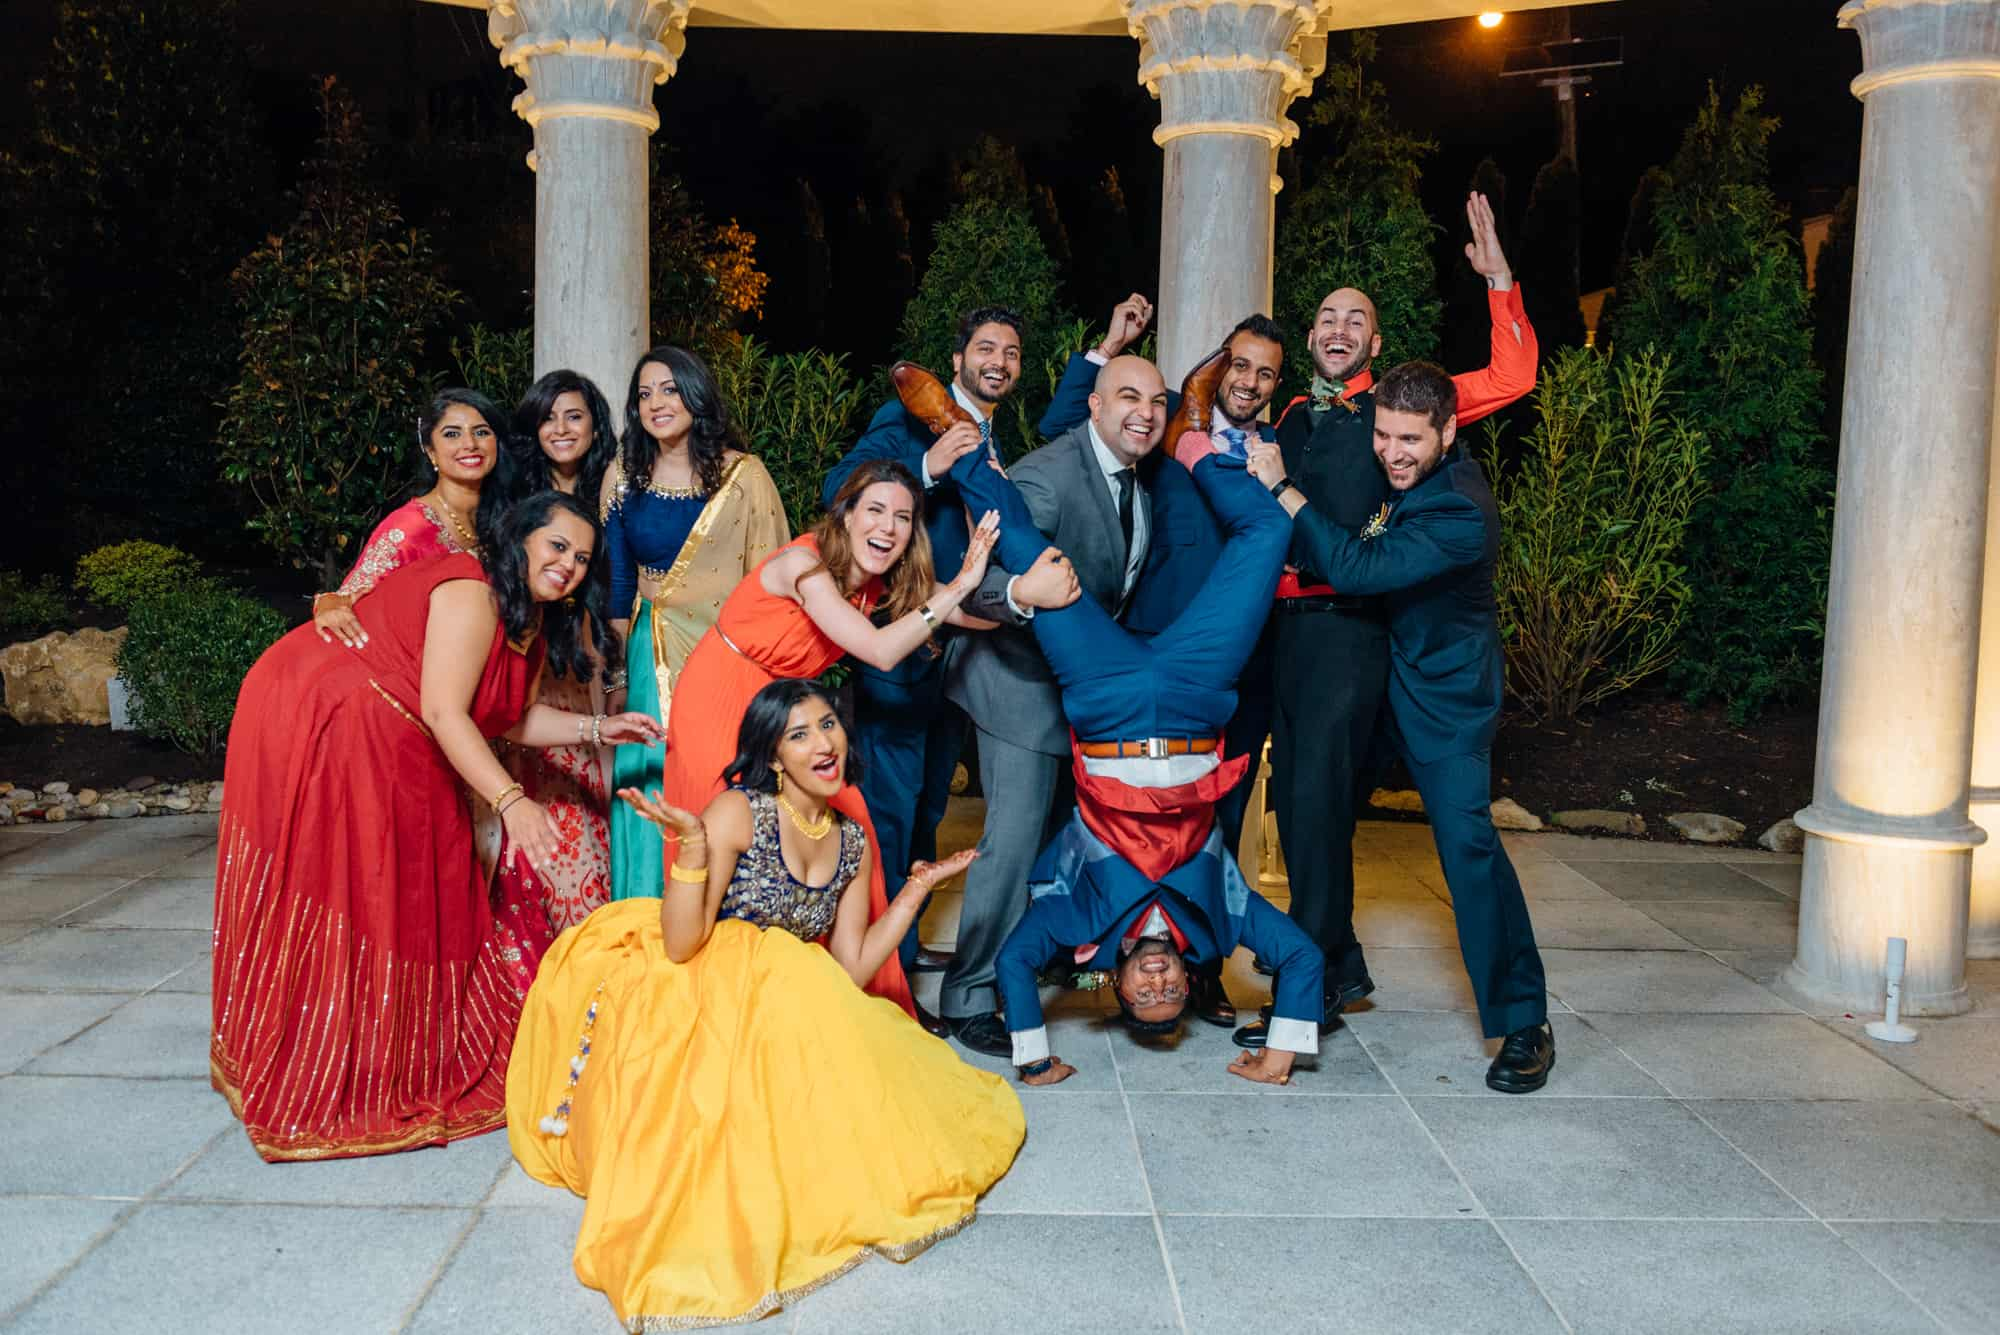 Bridal party having fun together